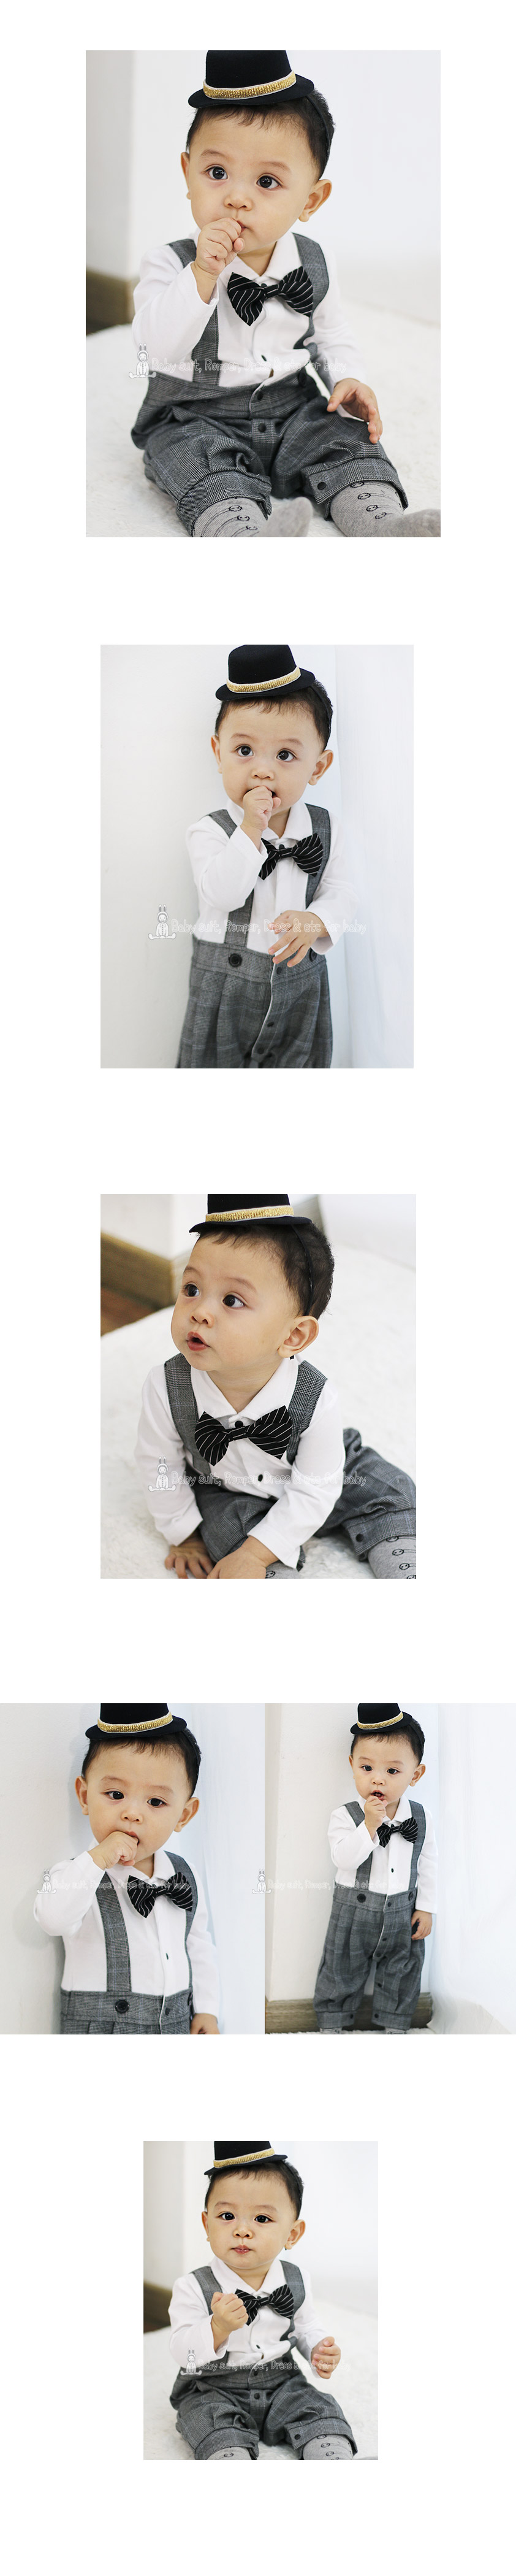 [ babymax ] [BABYMAX] 1271 Jade Bowtie Rompers / 100 Days Baby Suit Tuxedo